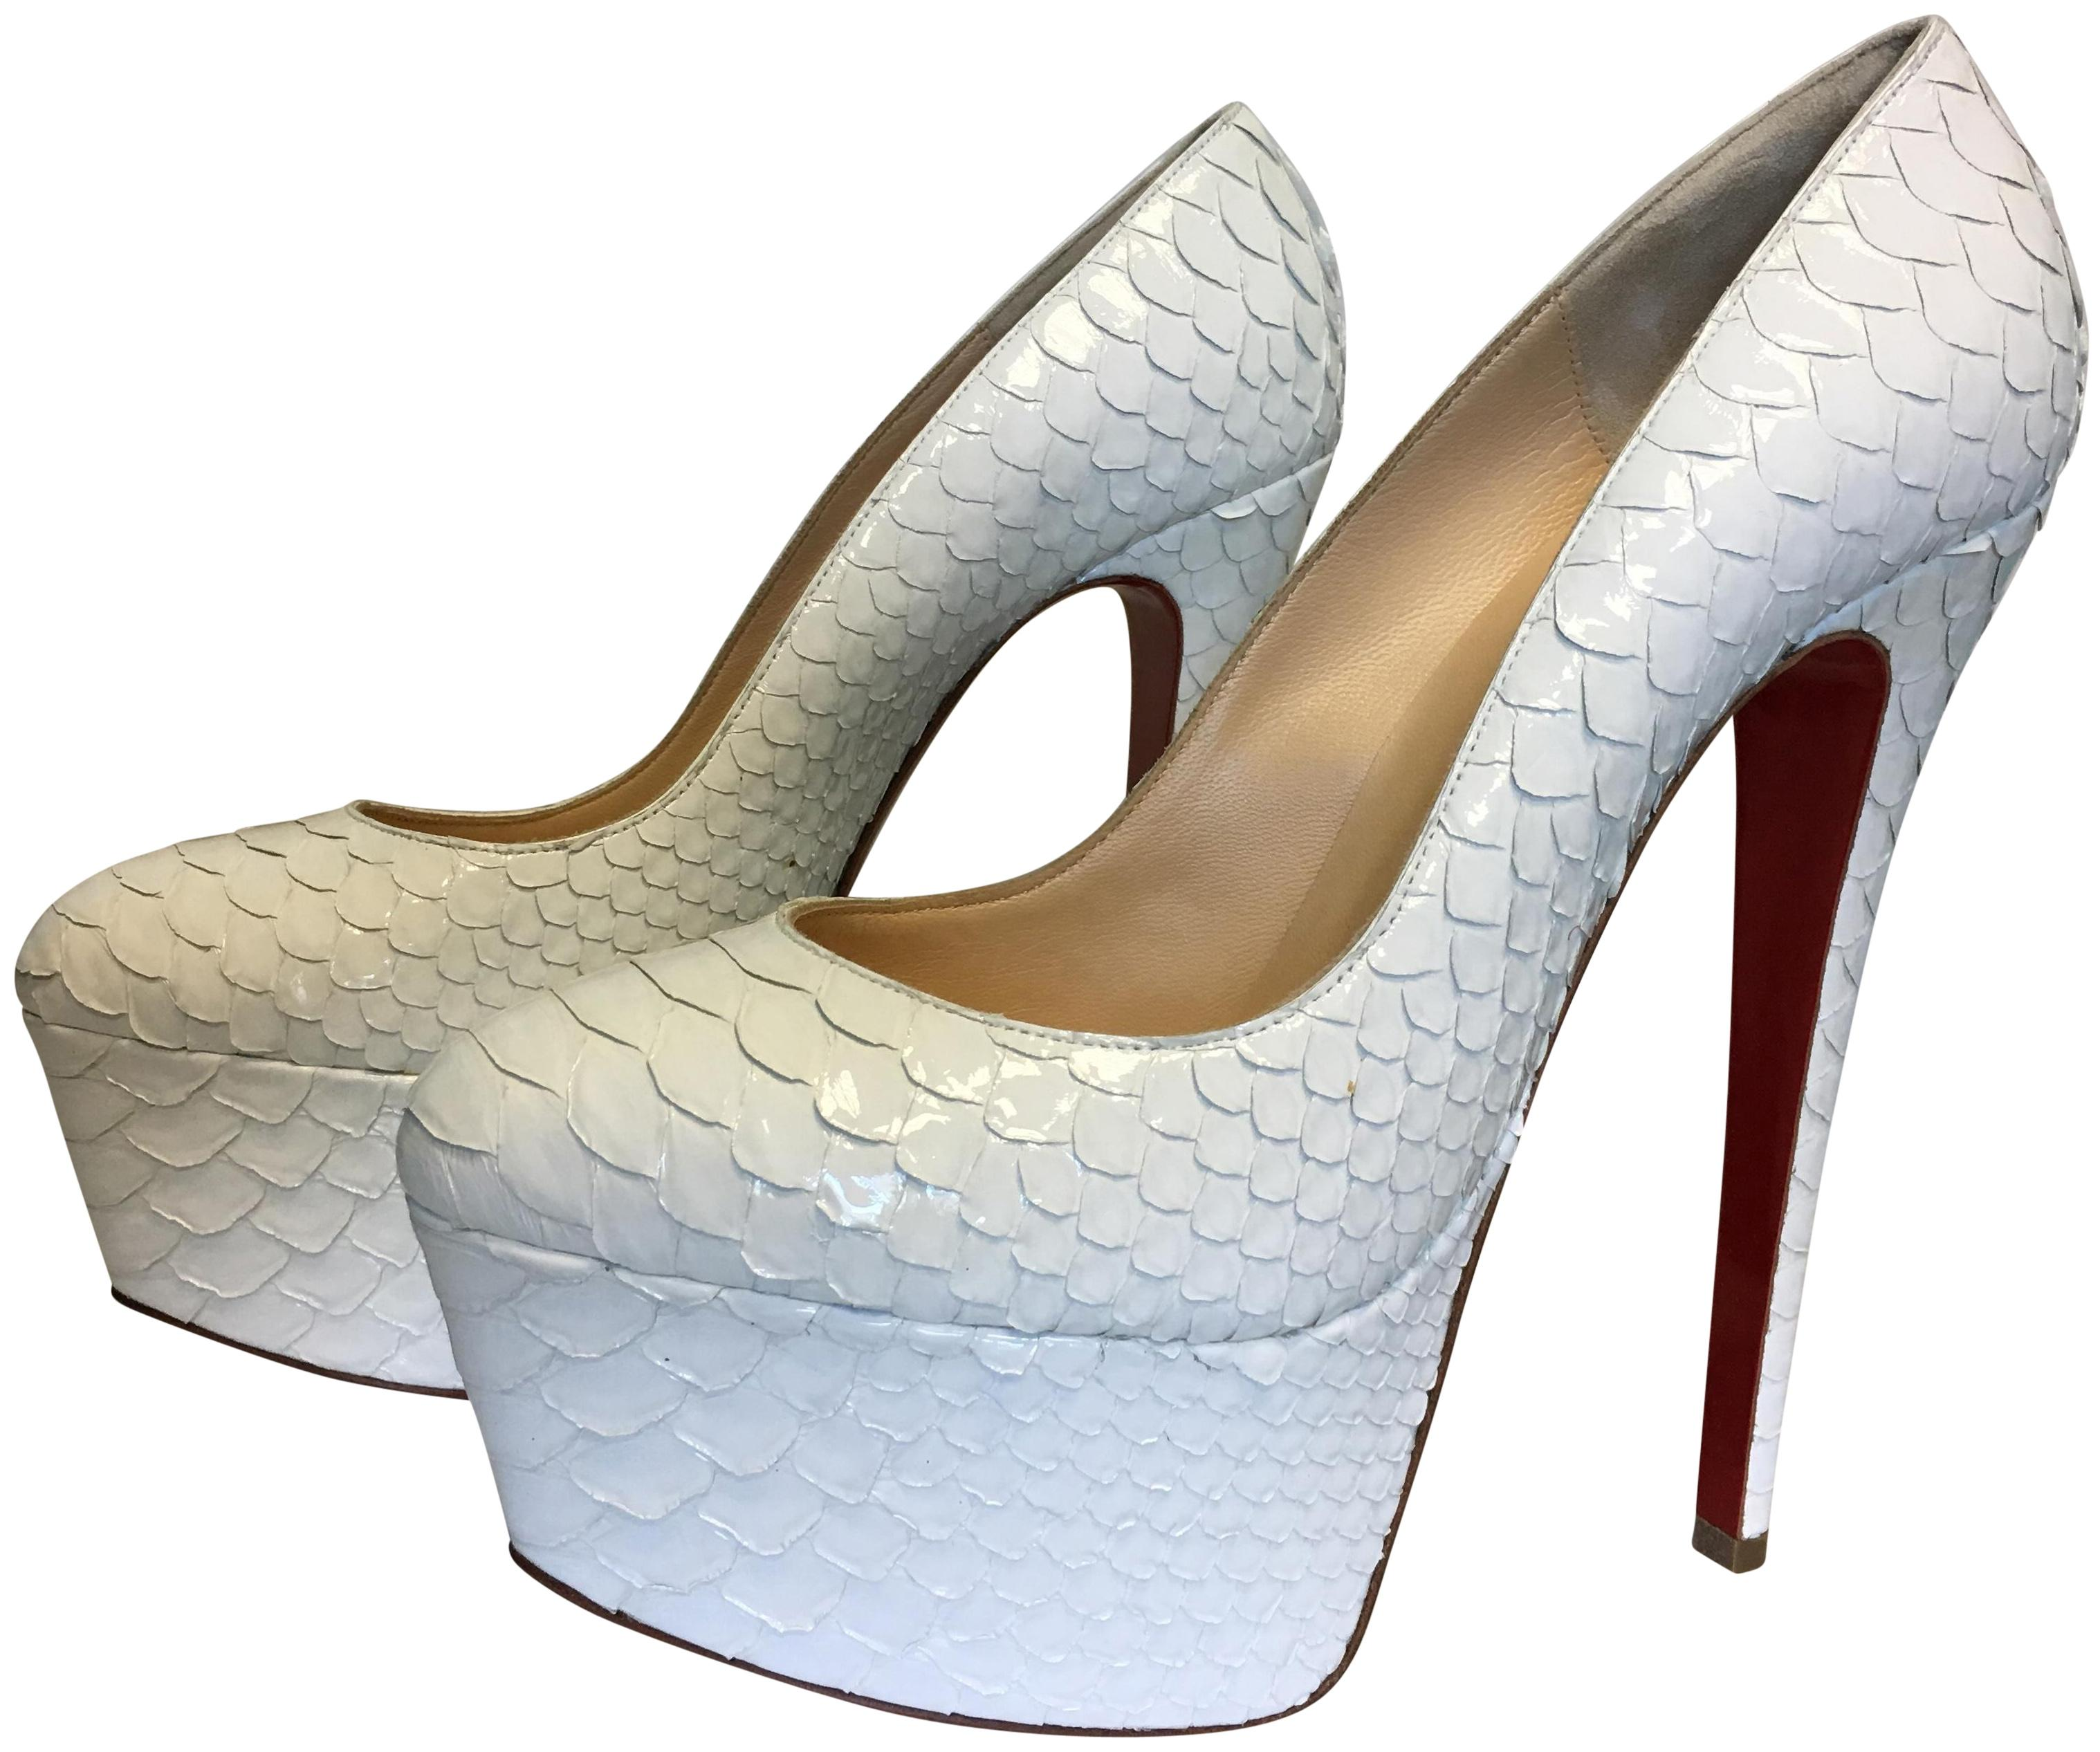 christian-louboutin-white-rare-and-limited-edition-victoria-160mm-platform-python-crystal-heels-pump-23586814-0-1.jpg da0250753